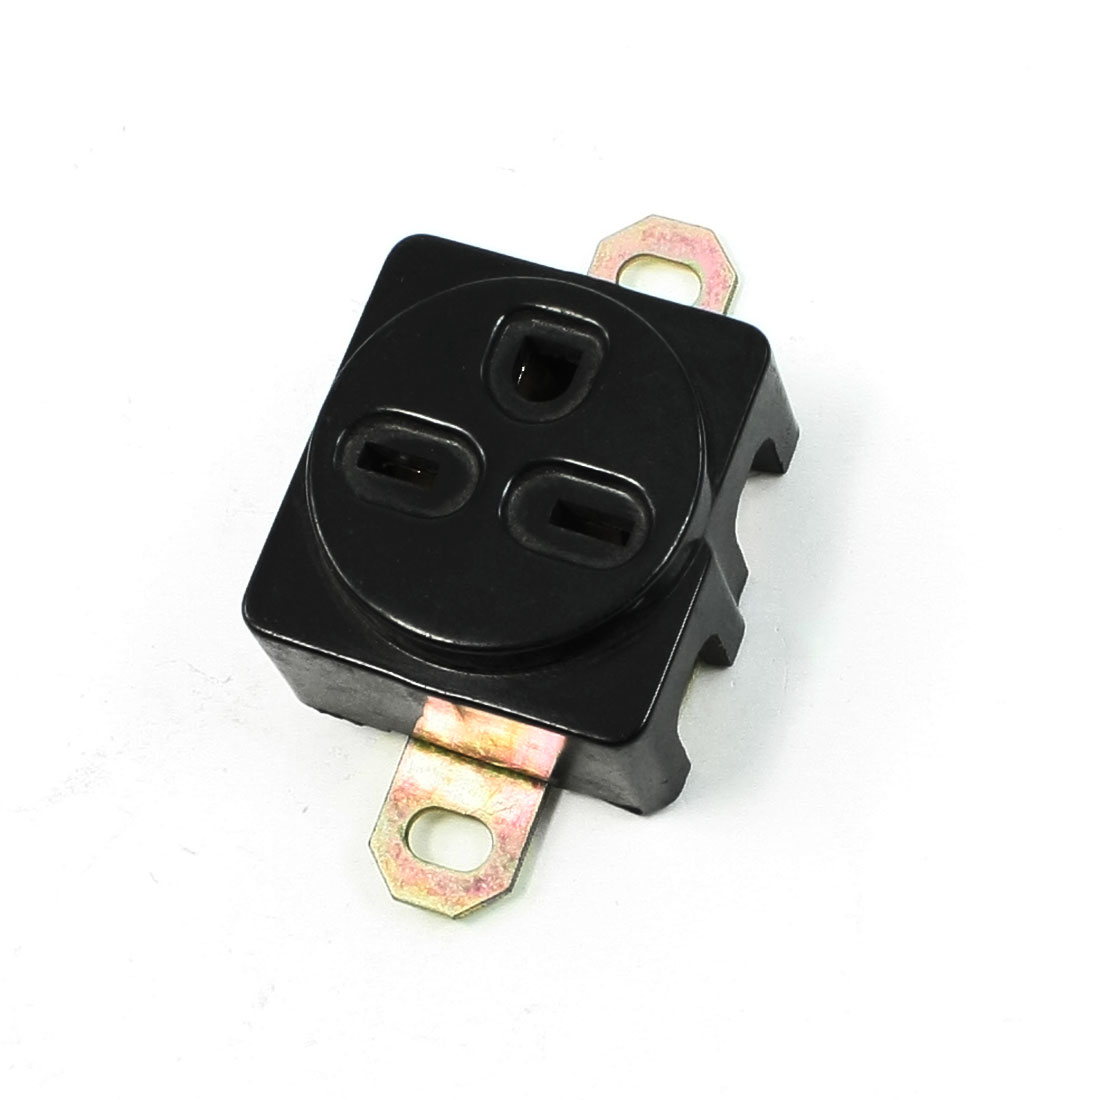 Black-Plastic-250-V-15-A-Generator-Socket-for-3-Pins-Plug